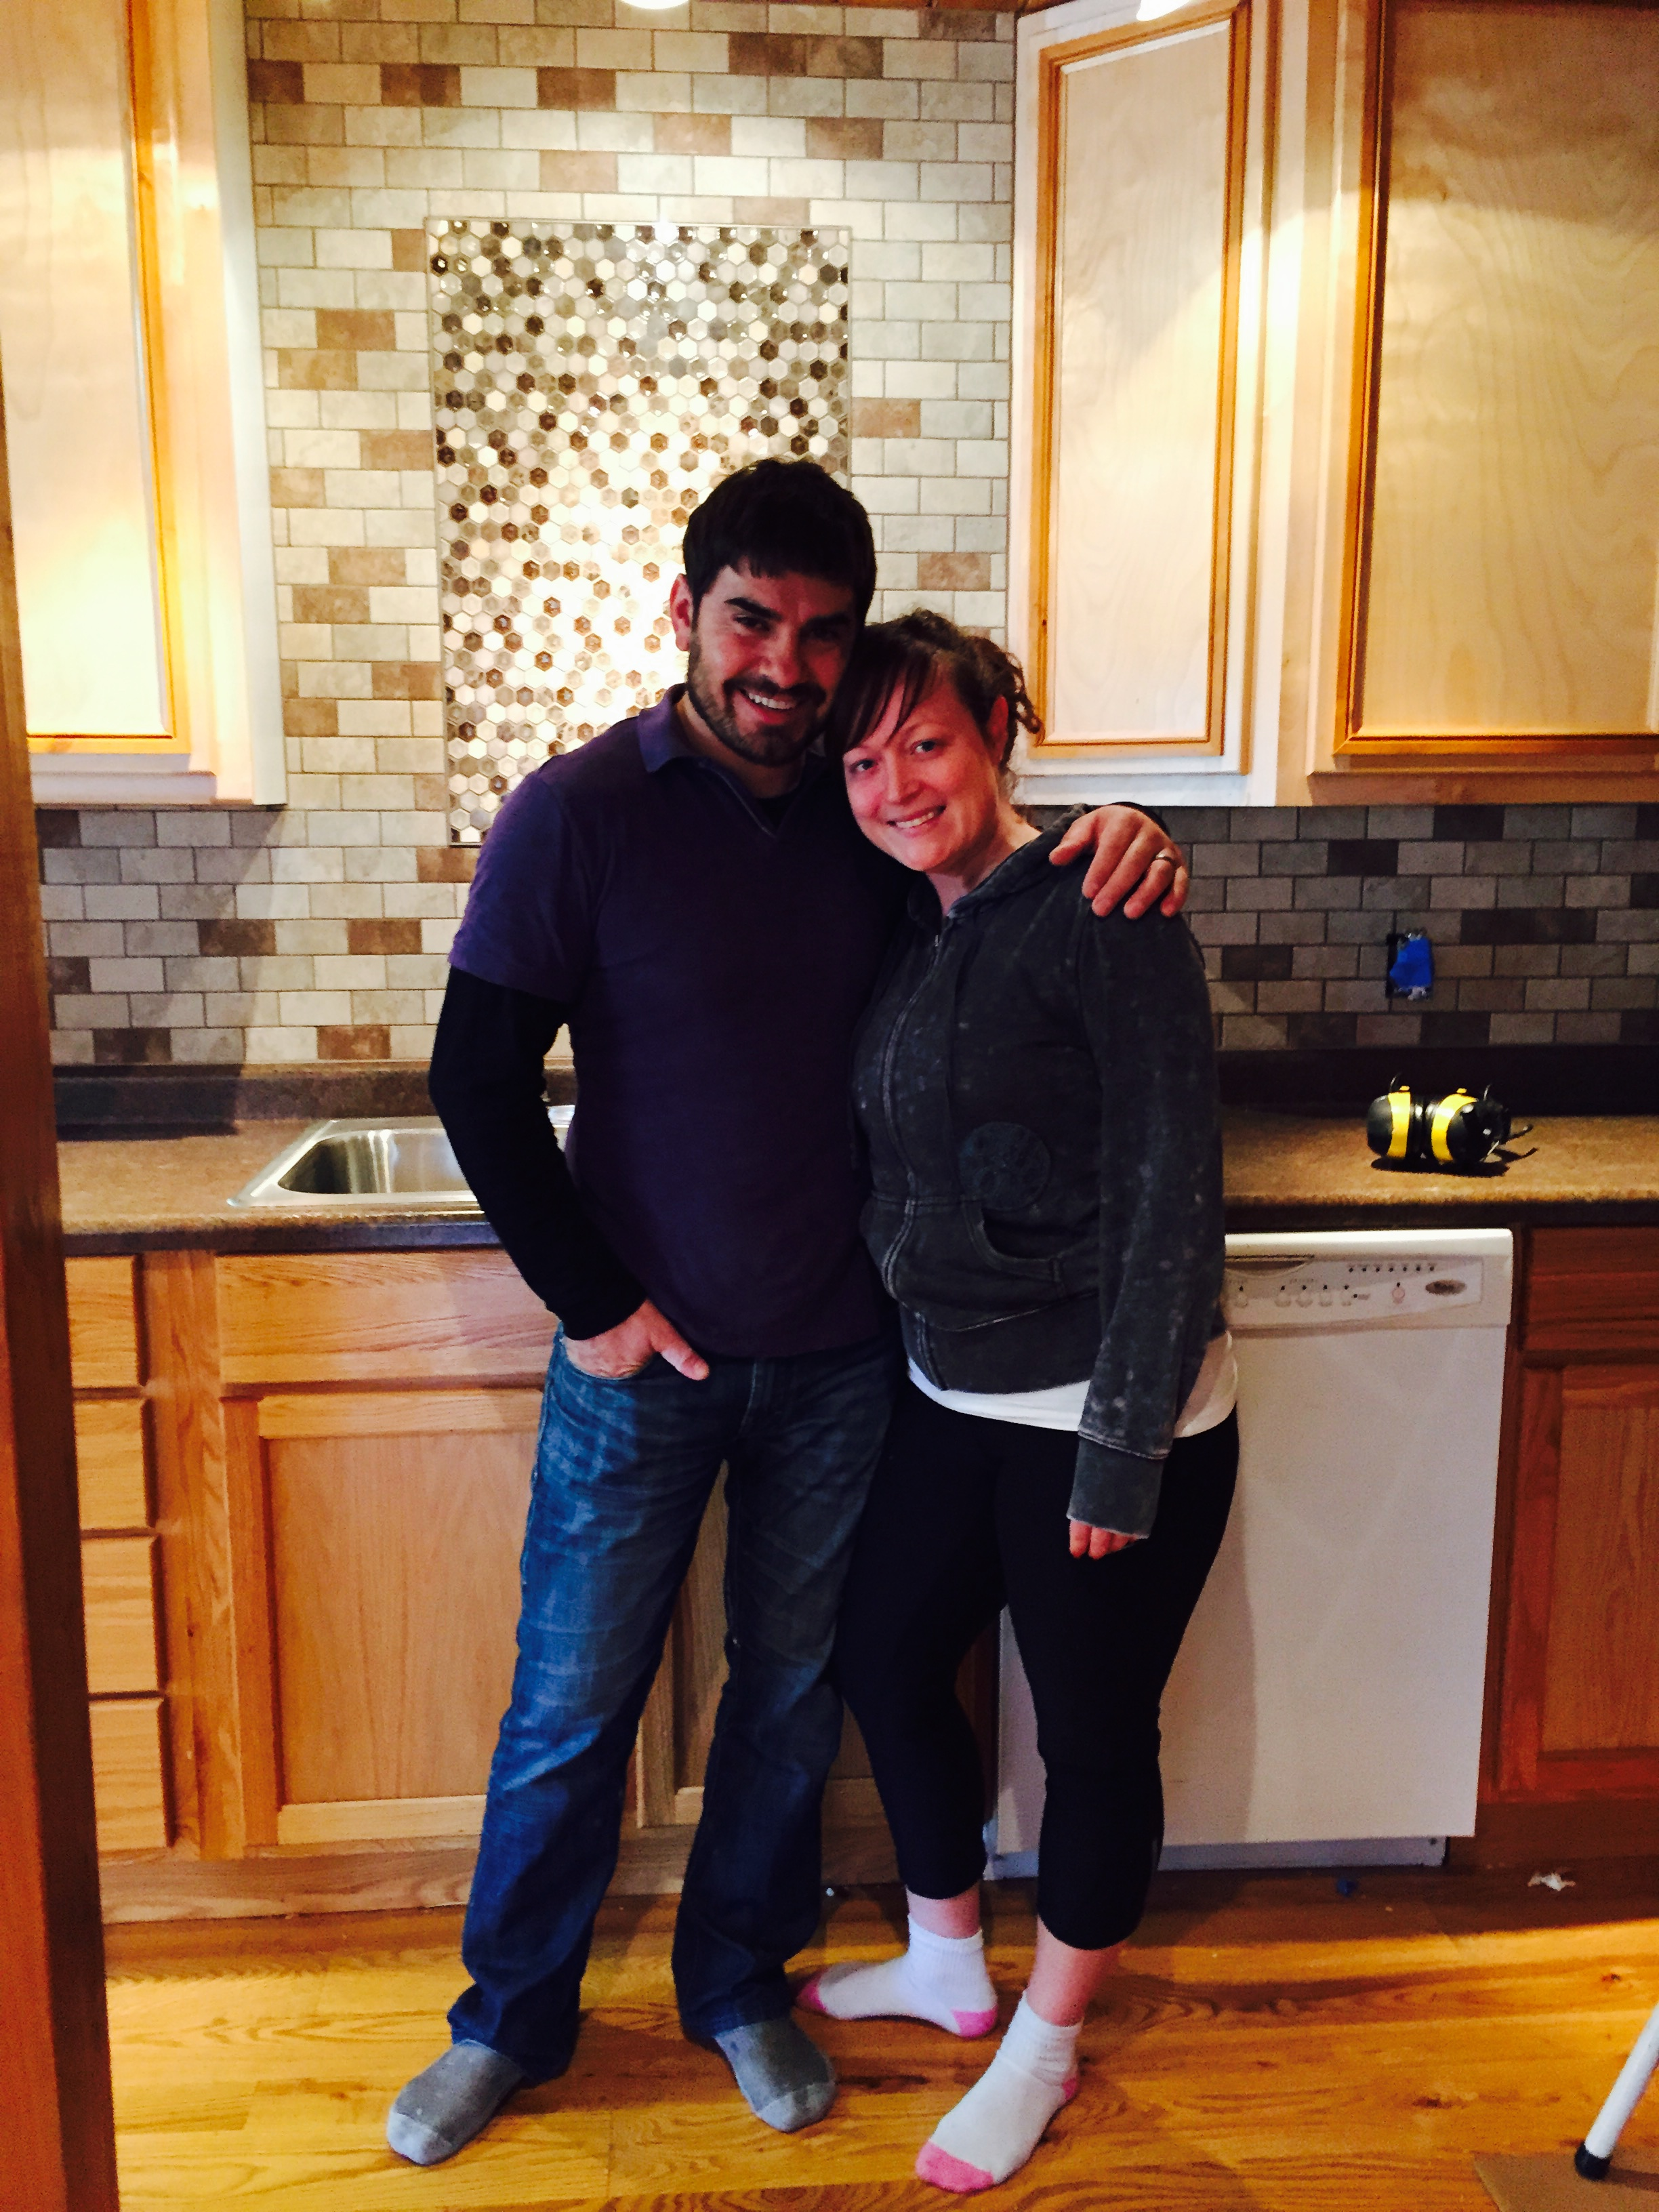 Benny and Jen Timony standing in front of newly installed backsplash!